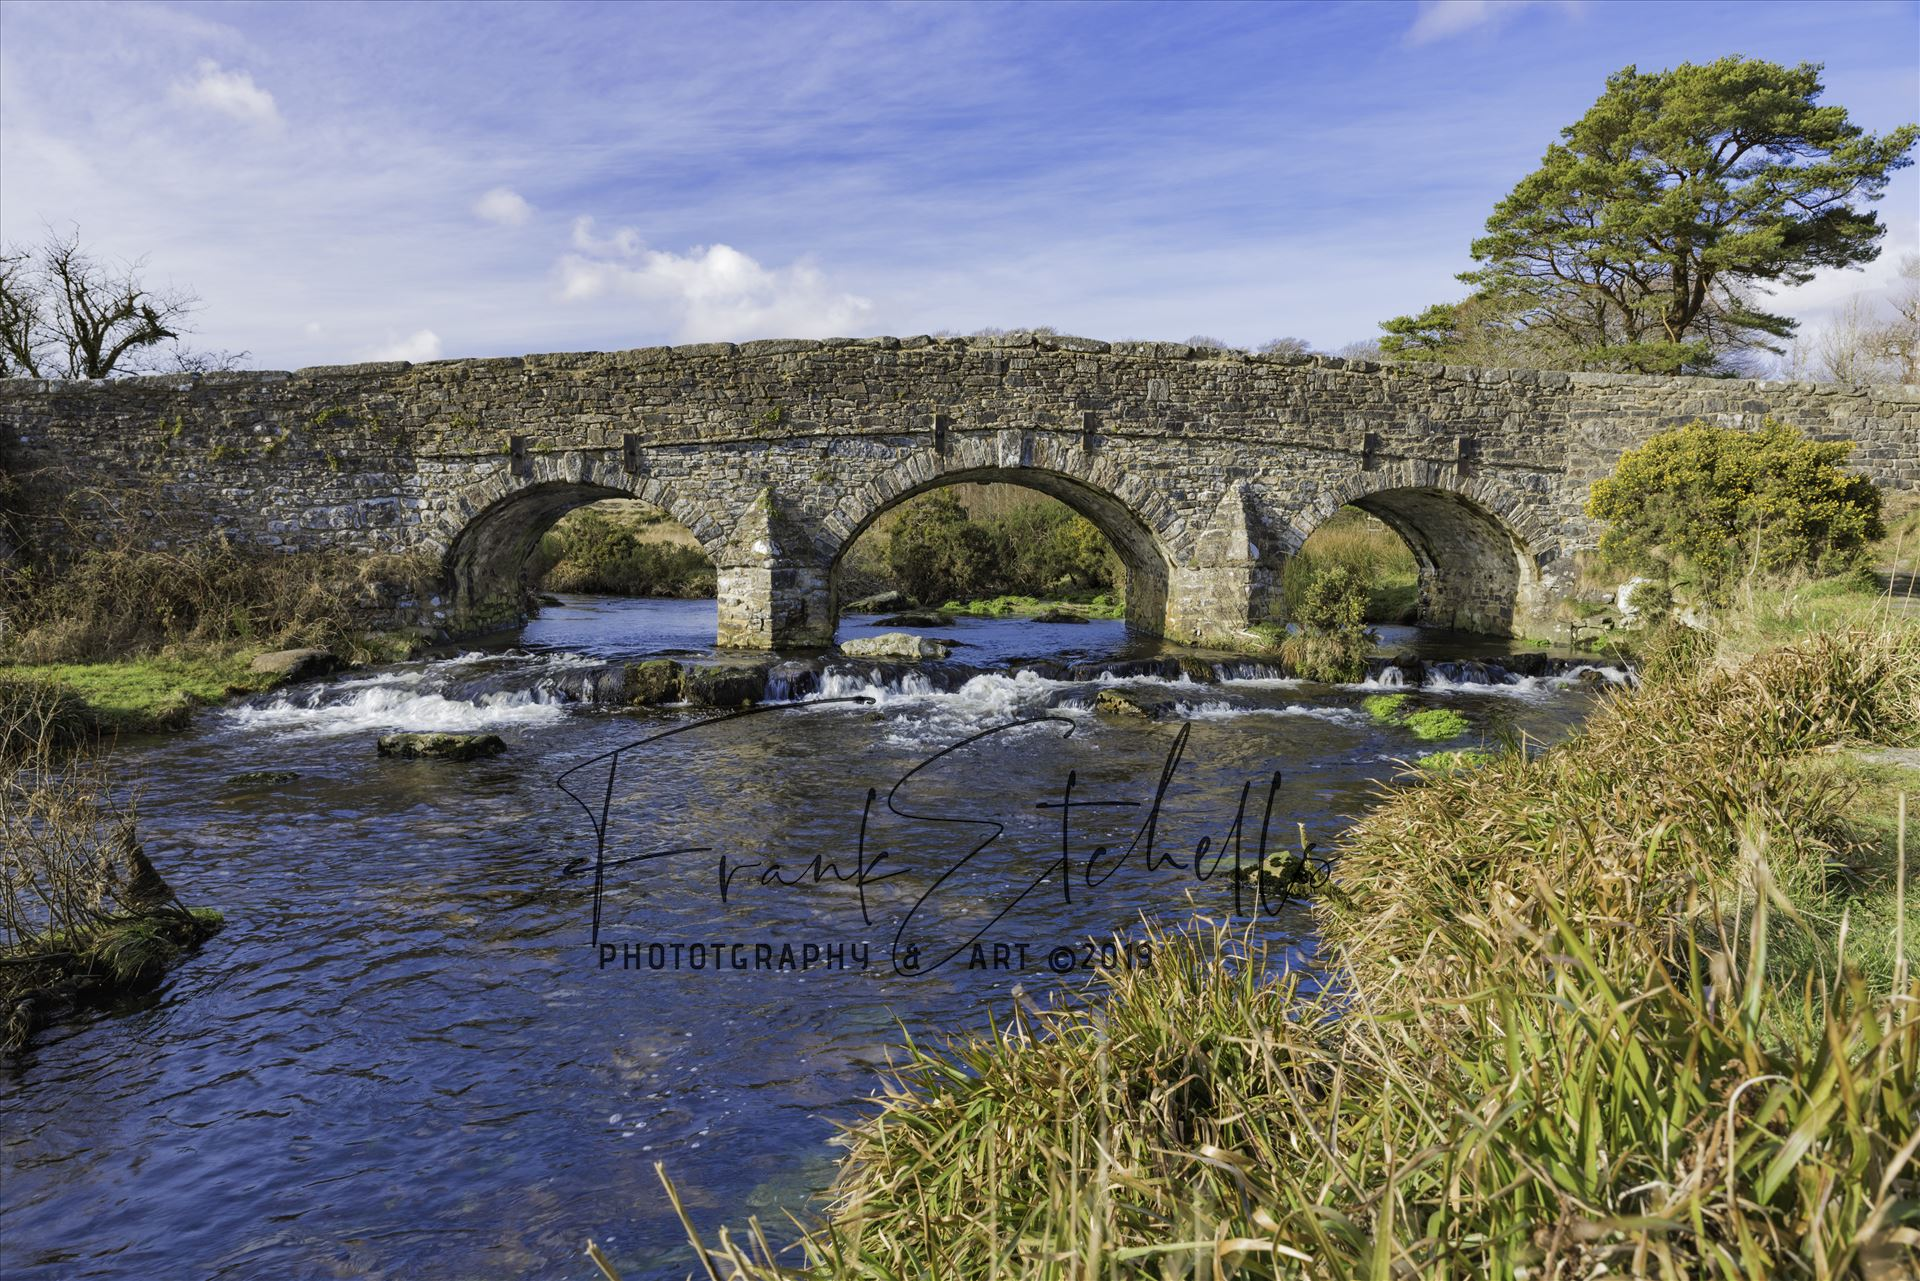 East Dart River Bridge 1 - A view of the bridge over the East Dart River at Postbridge, Dartmoor National Park from the pathway at the side of the